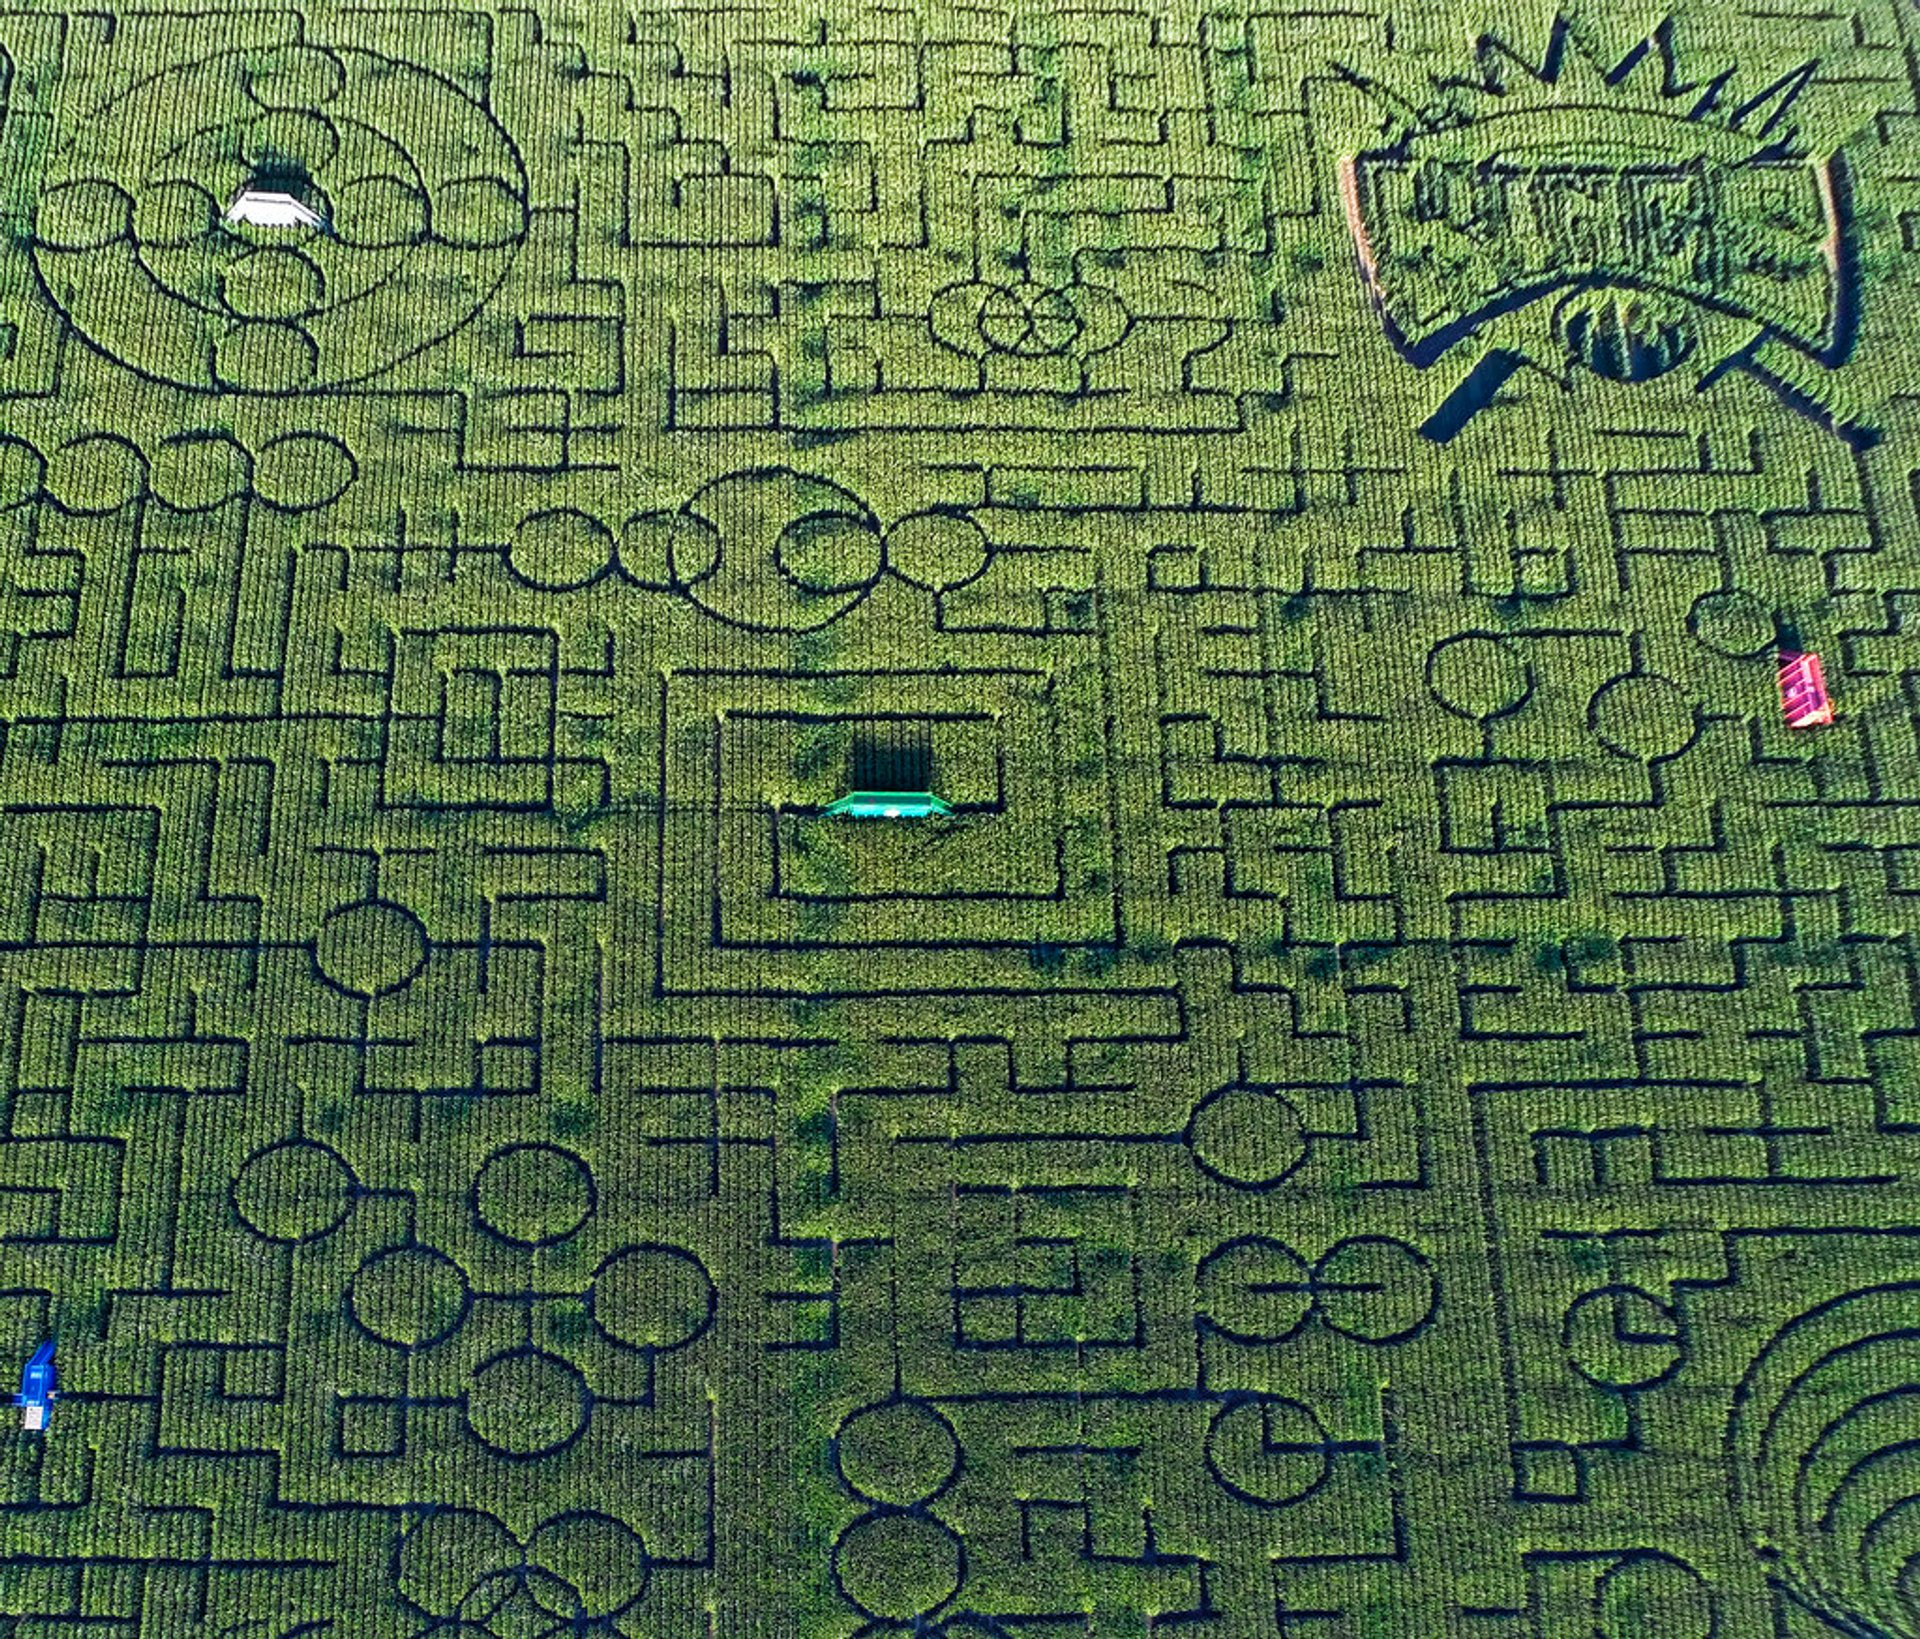 Cool Patch Pumpkins Corn Maze in California 2020 - Best Time